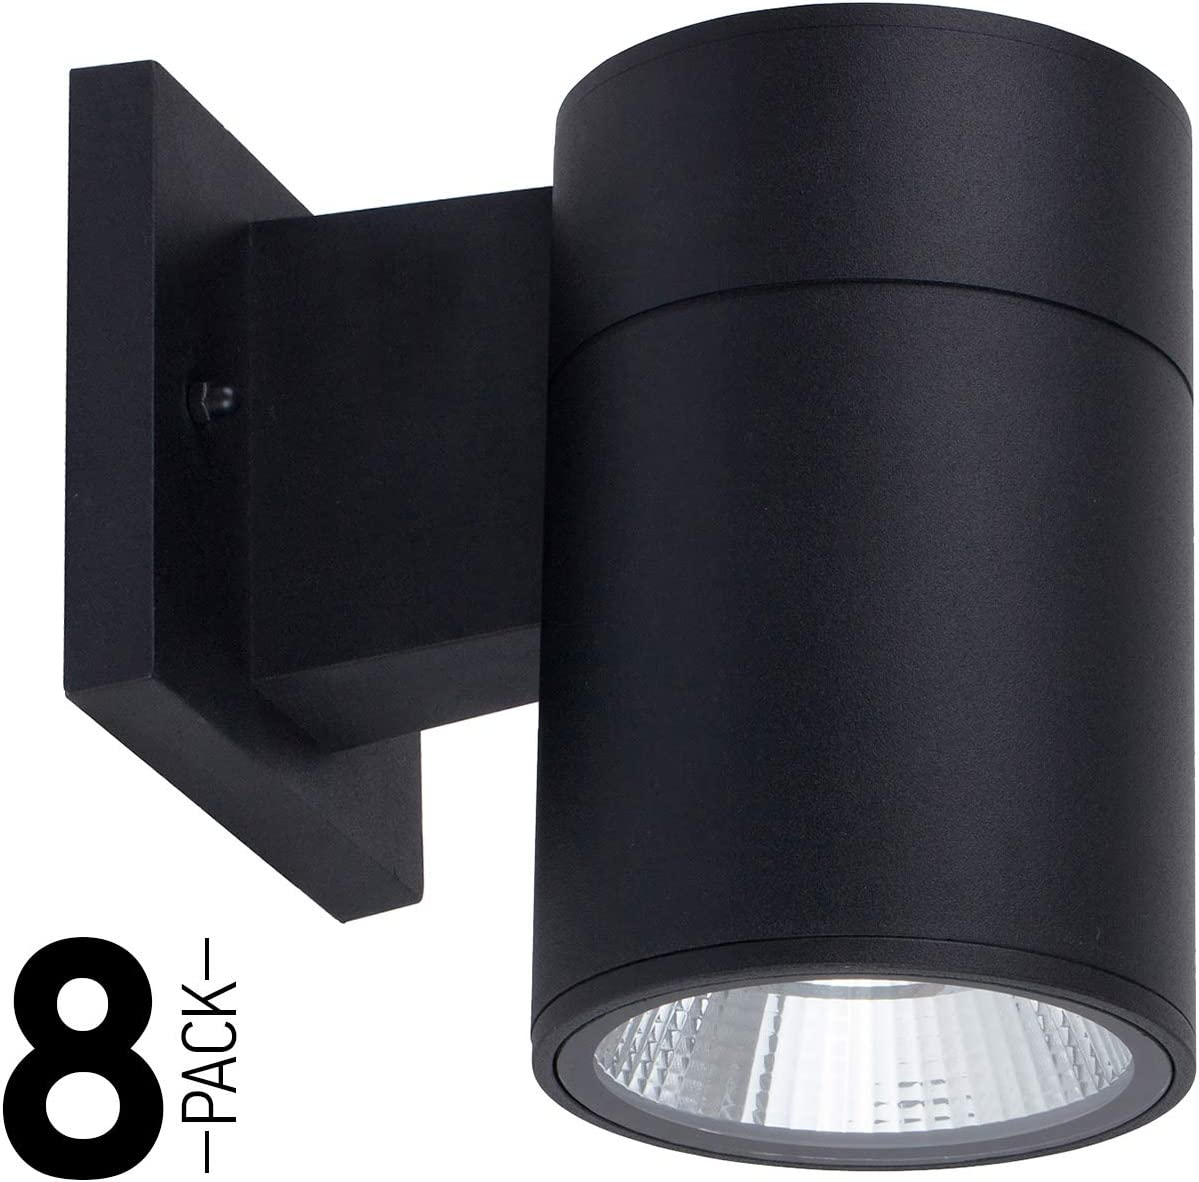 OSTWIN 8 Pack 1-Direction LED Outdoor Cylinder Up or Down Light, 9W 60W Equivalent , 735 Lumen, 5000K Daylight, Modern Light Fixture for Door Way, Corridor, Waterproof, Black, ETL and Energy Star